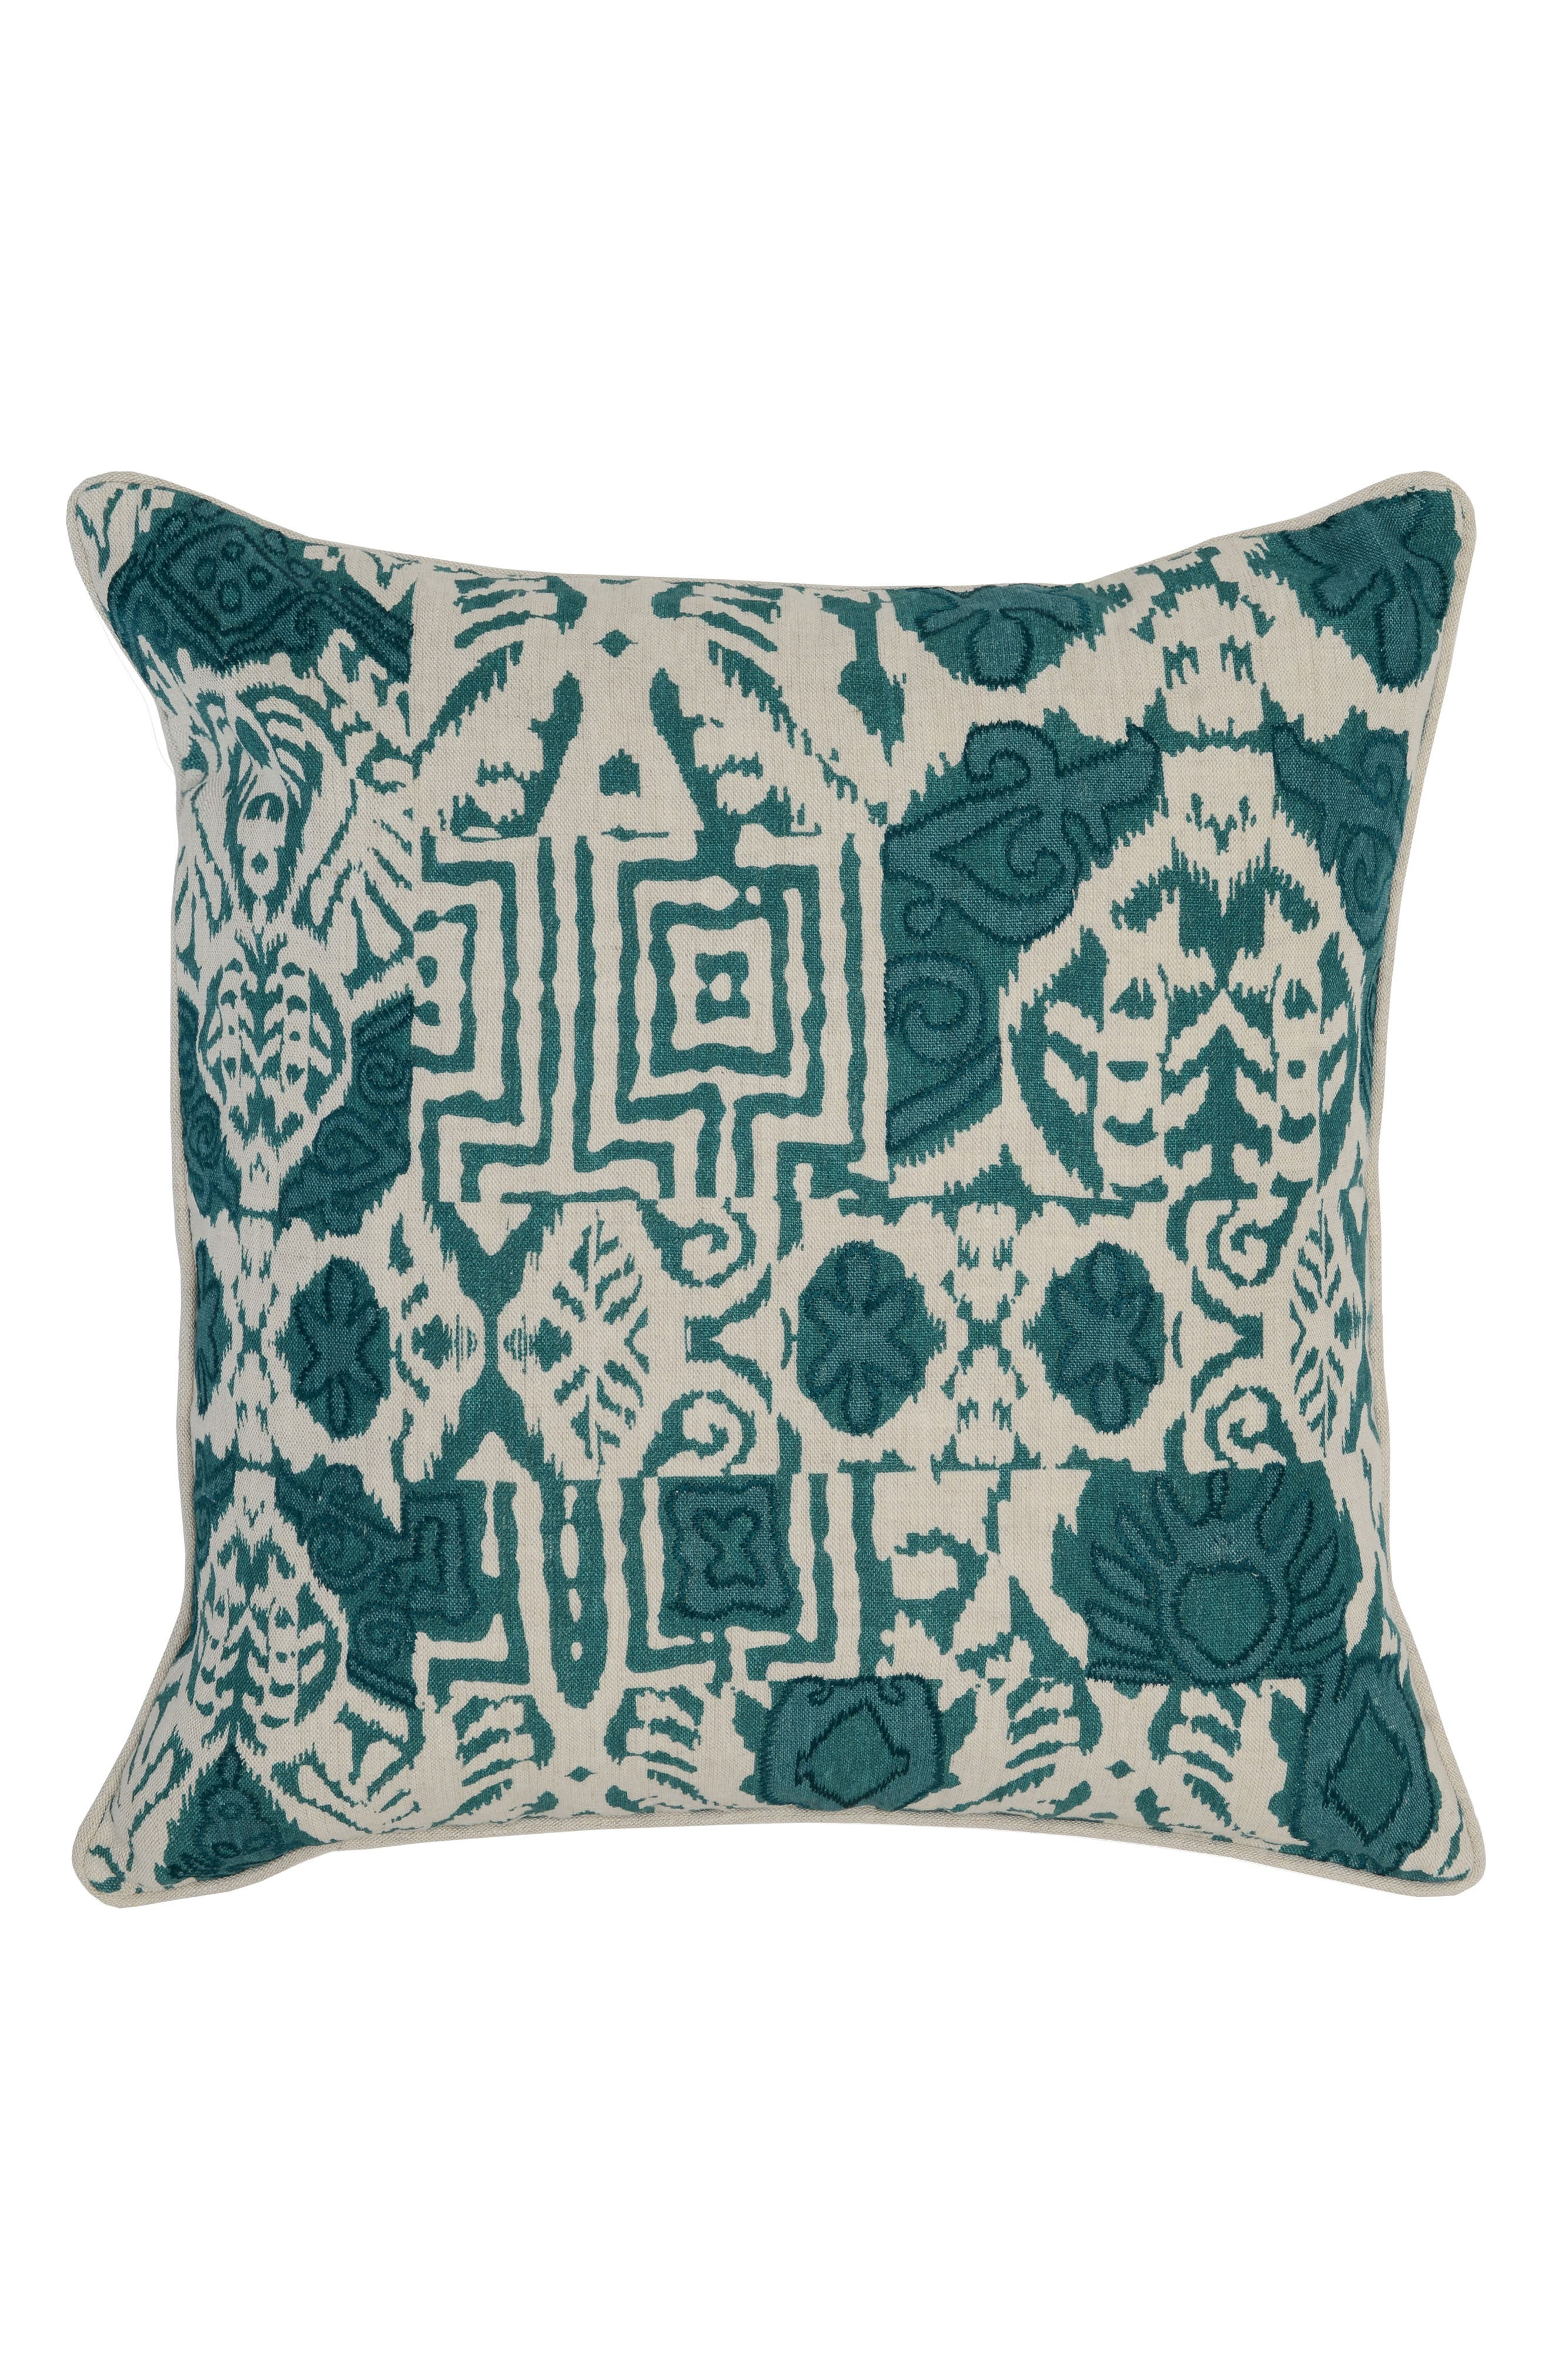 Leon Surf Accent Pillow,                             Main thumbnail 1, color,                             Teal/ Ivory